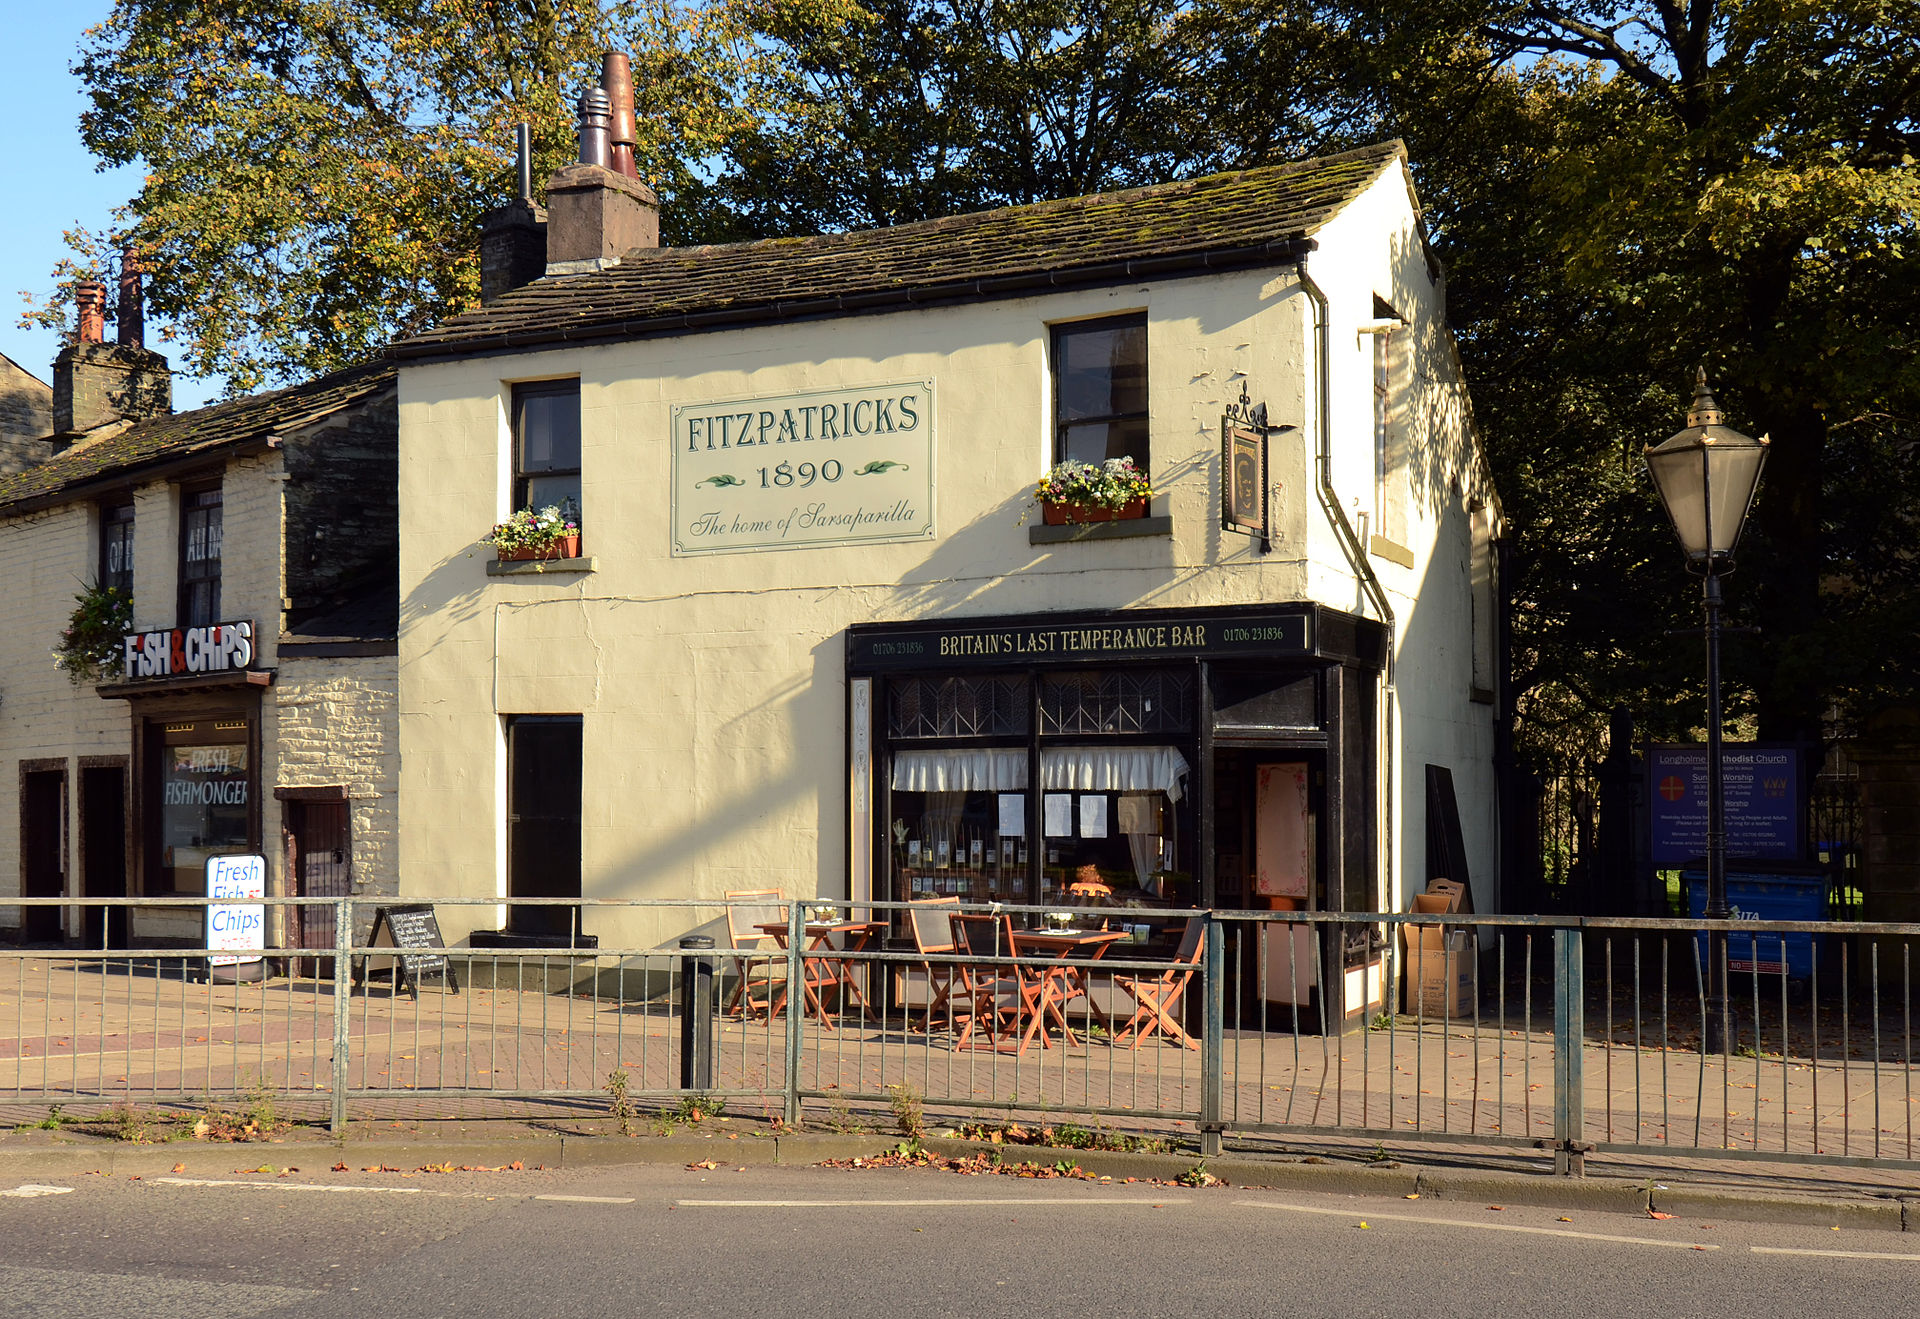 Fitzpatricks_Temperance_Bar